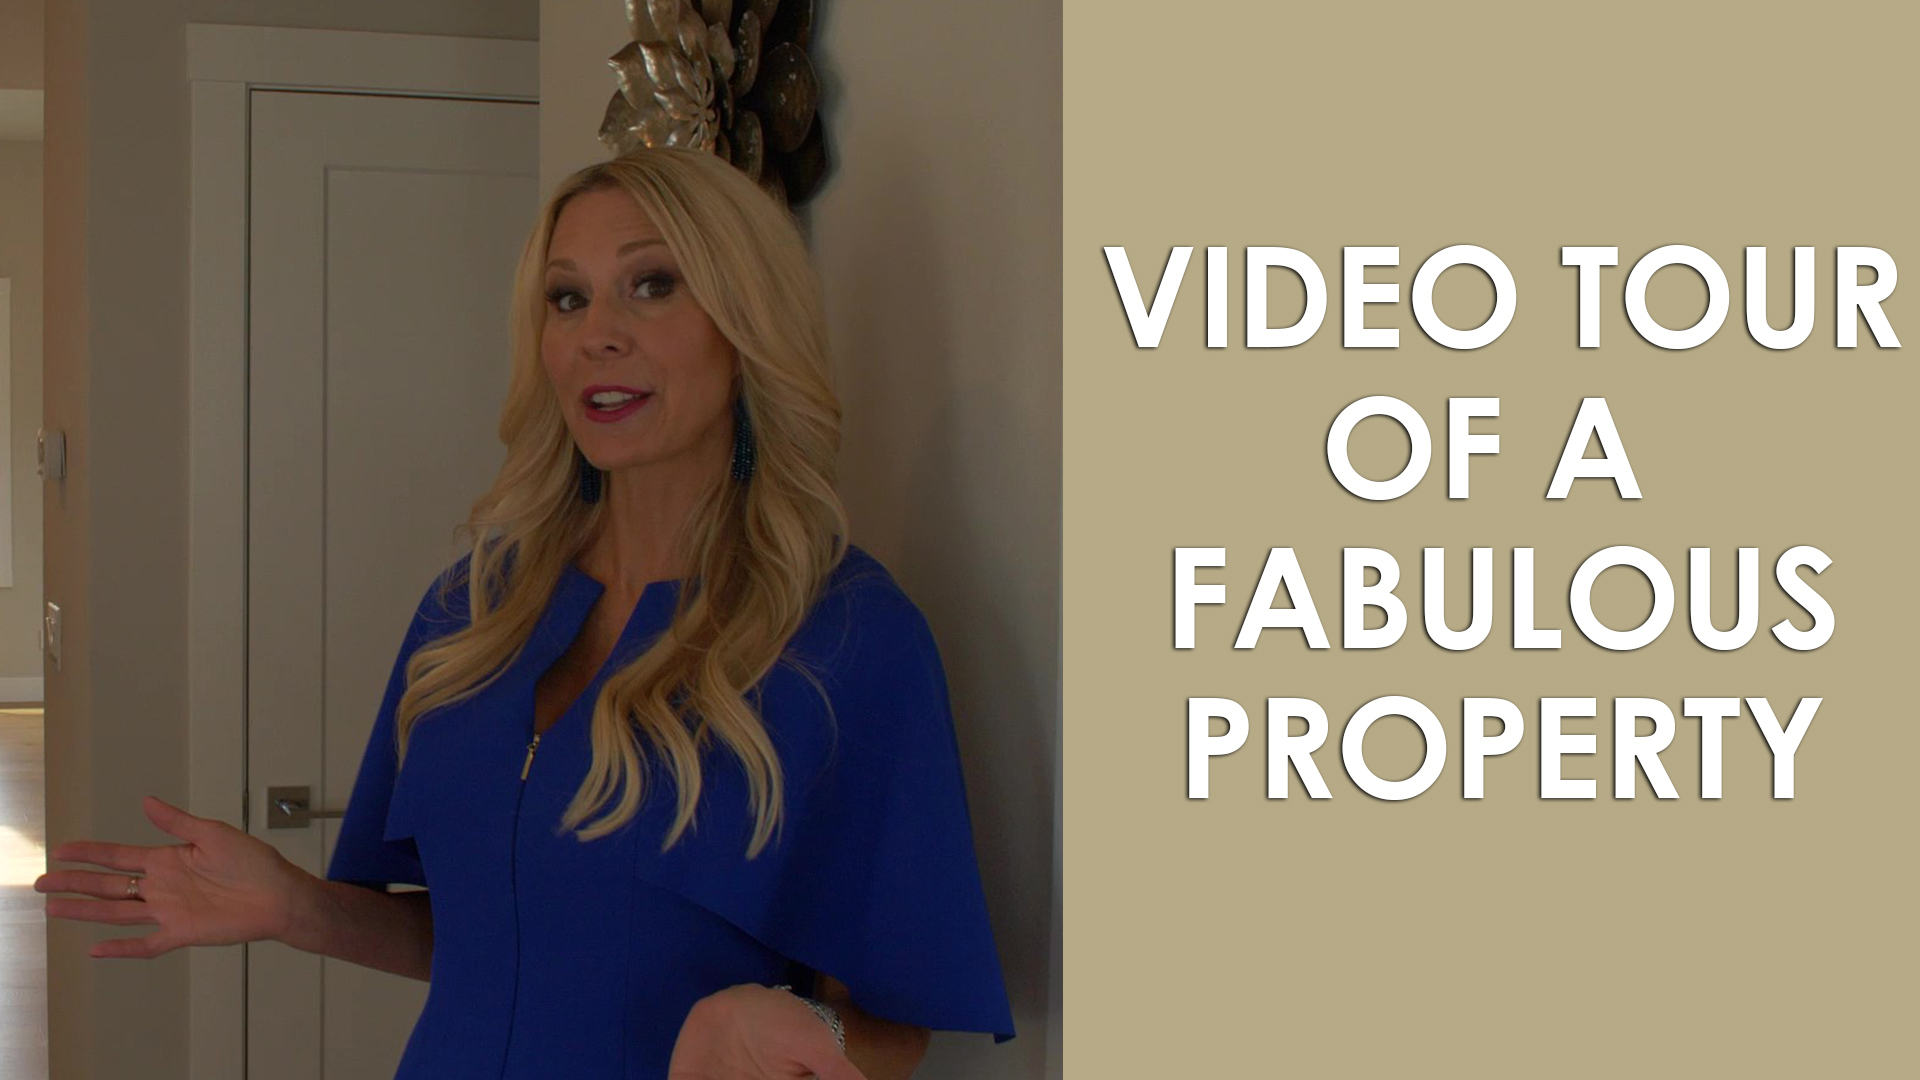 Come Along for a Video Tour of This Fabulous, Elegant Property